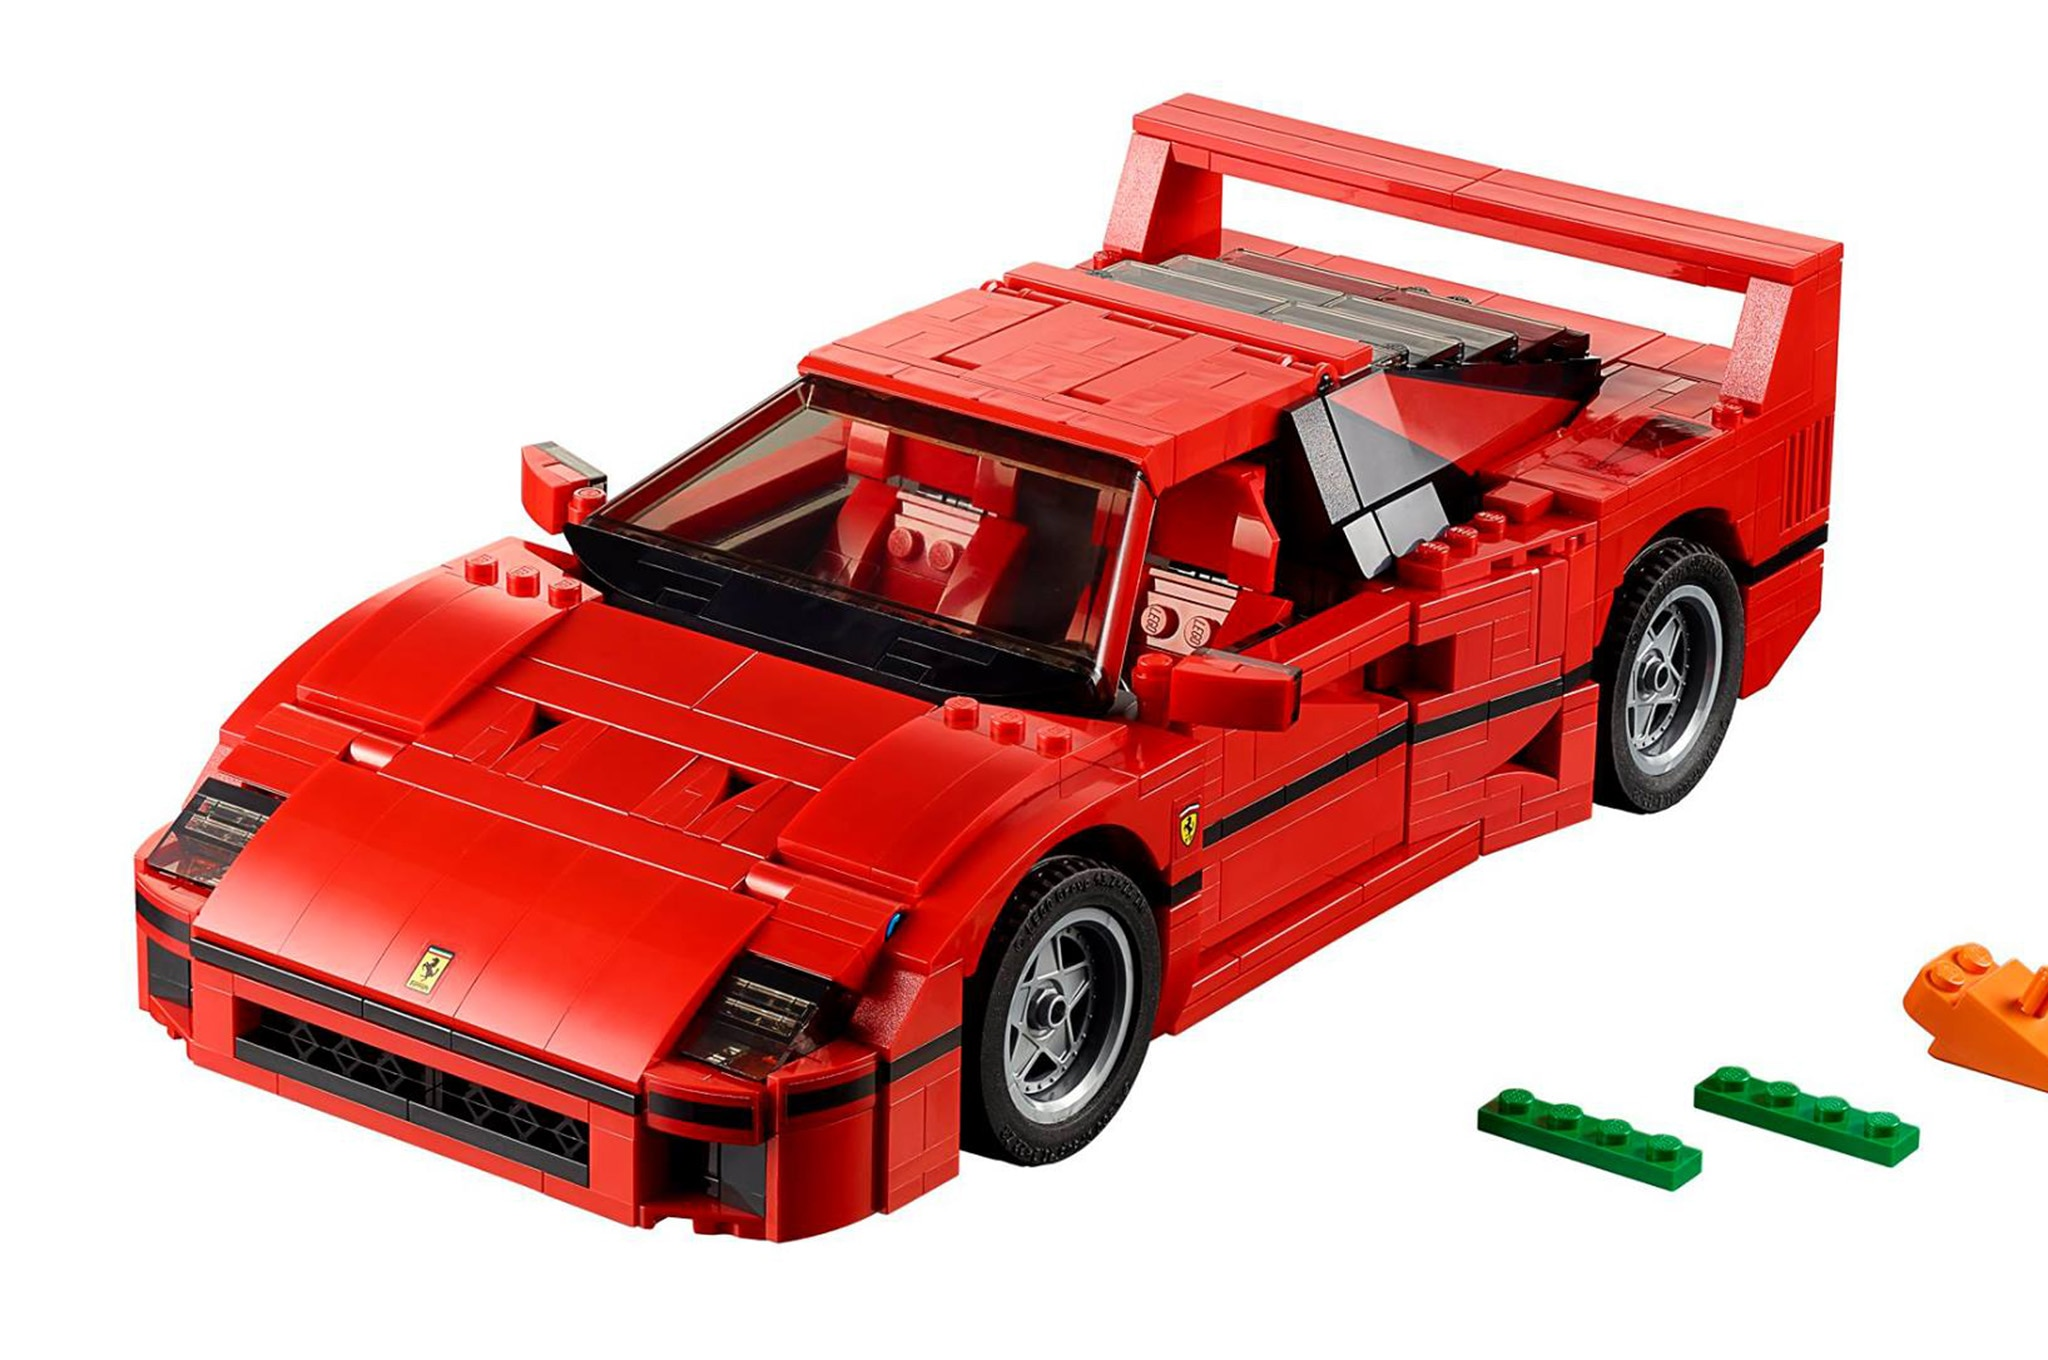 lego releases detailed ferrari f40 creator set. Black Bedroom Furniture Sets. Home Design Ideas